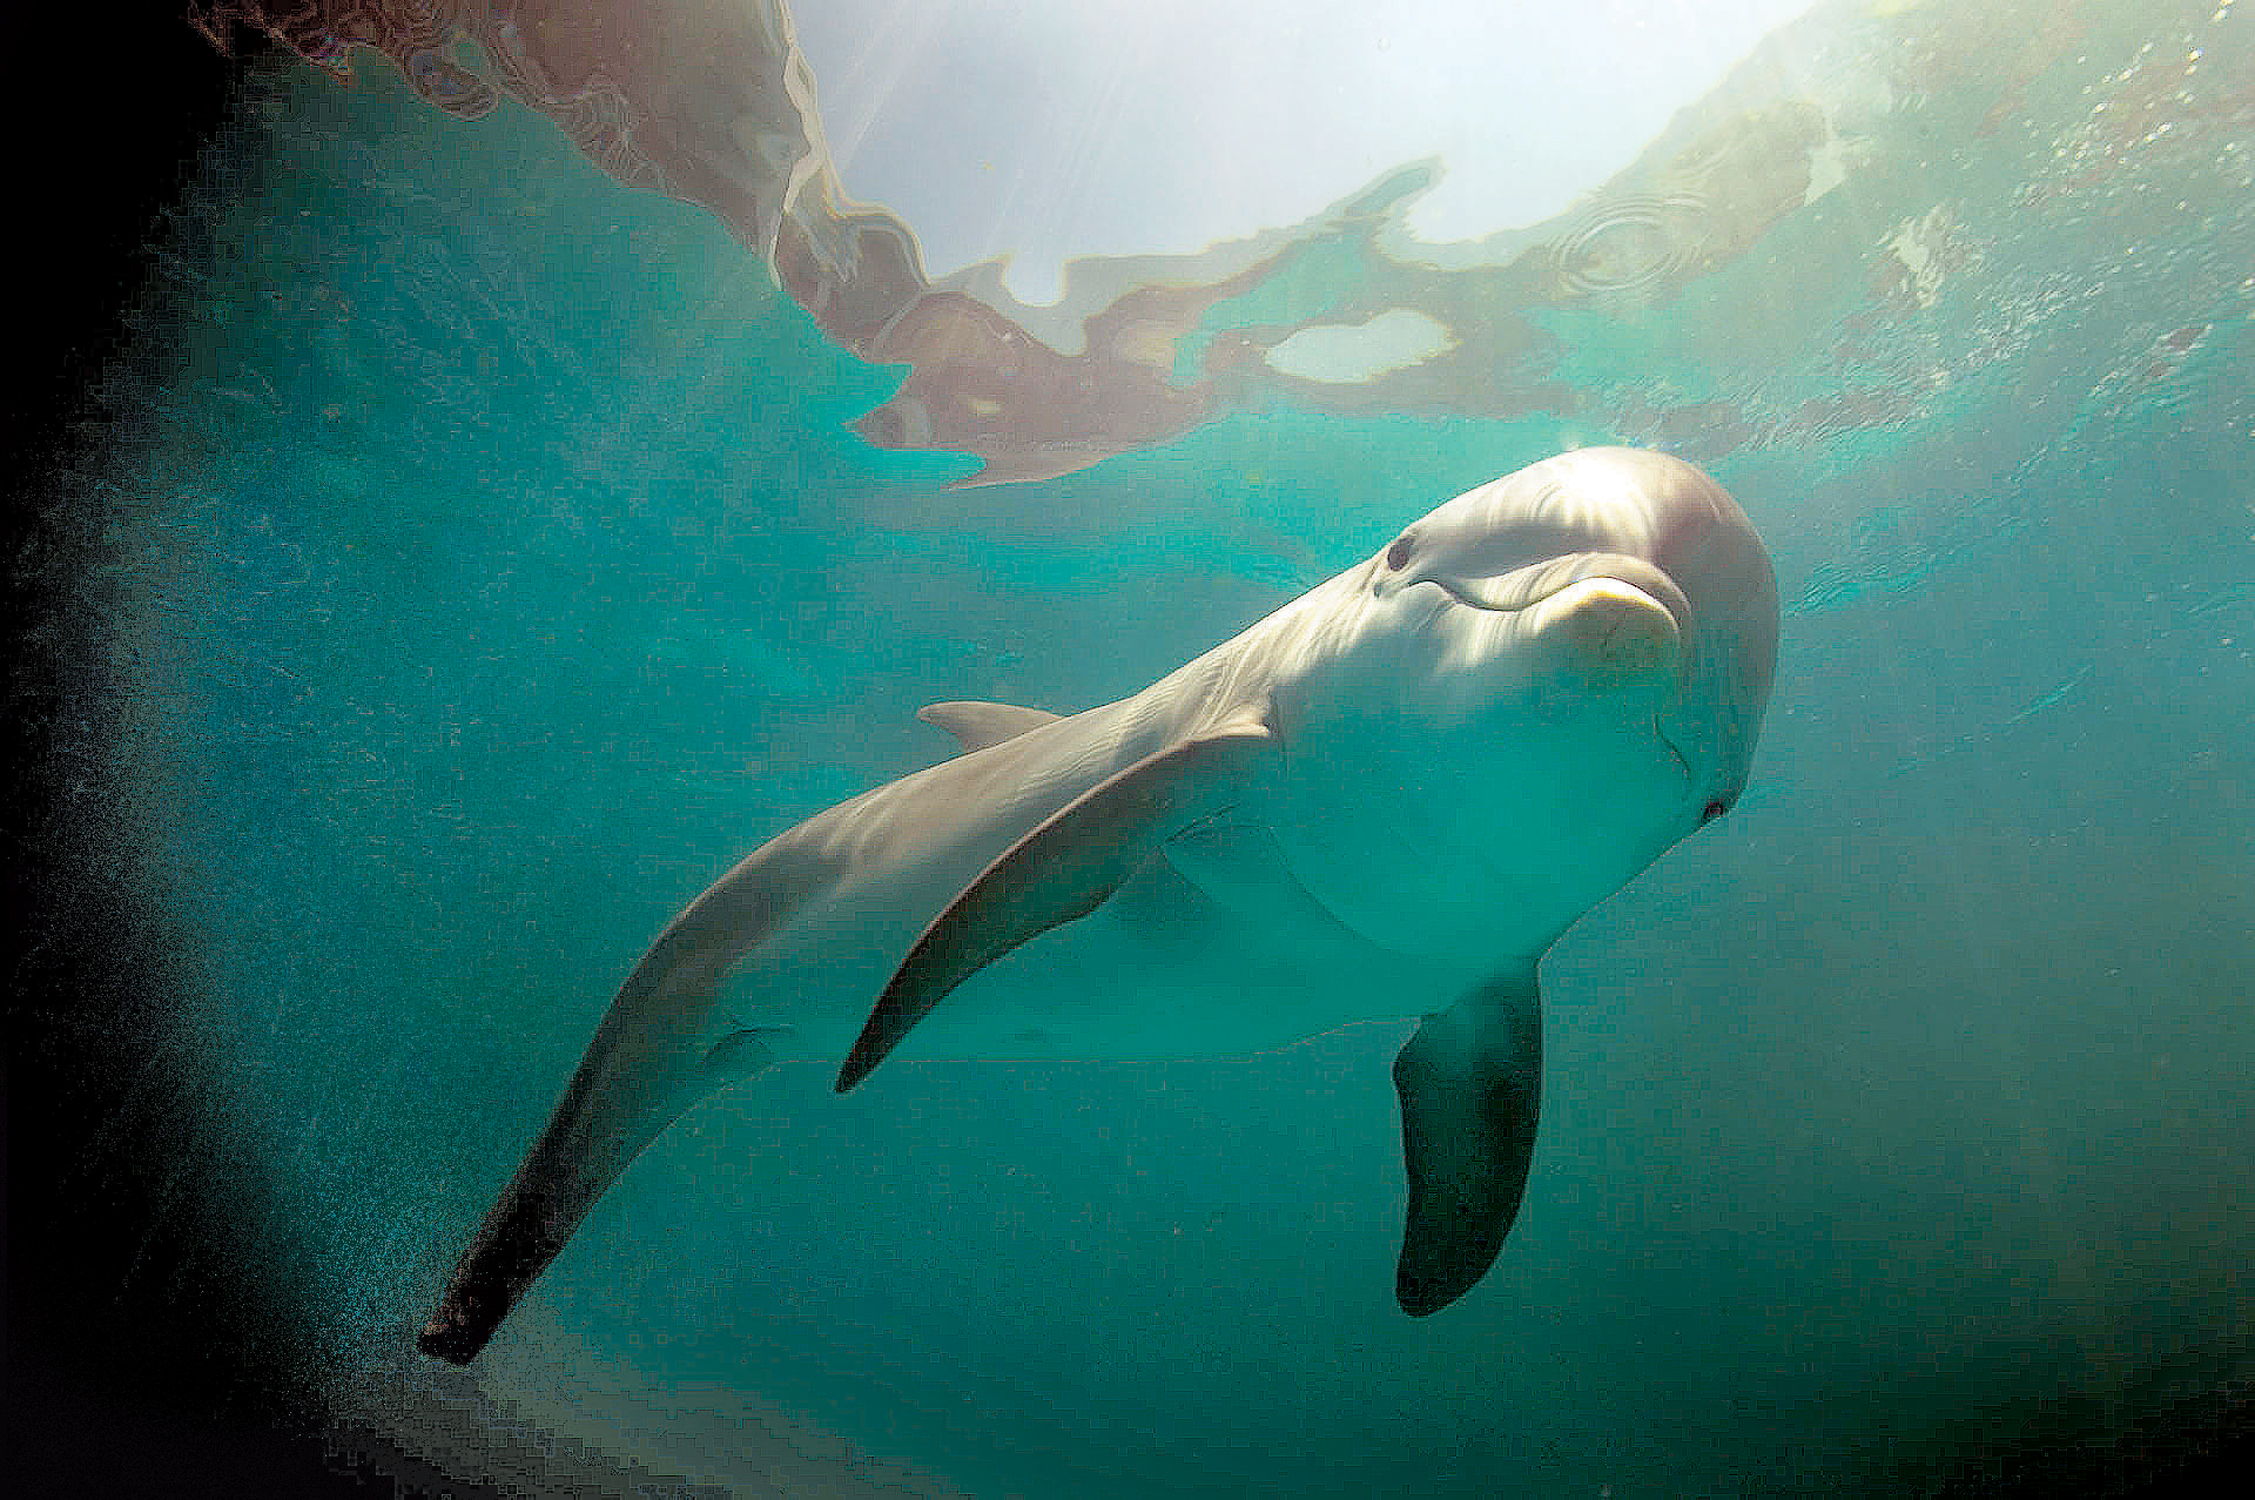 My Time with Winter the Dolphin